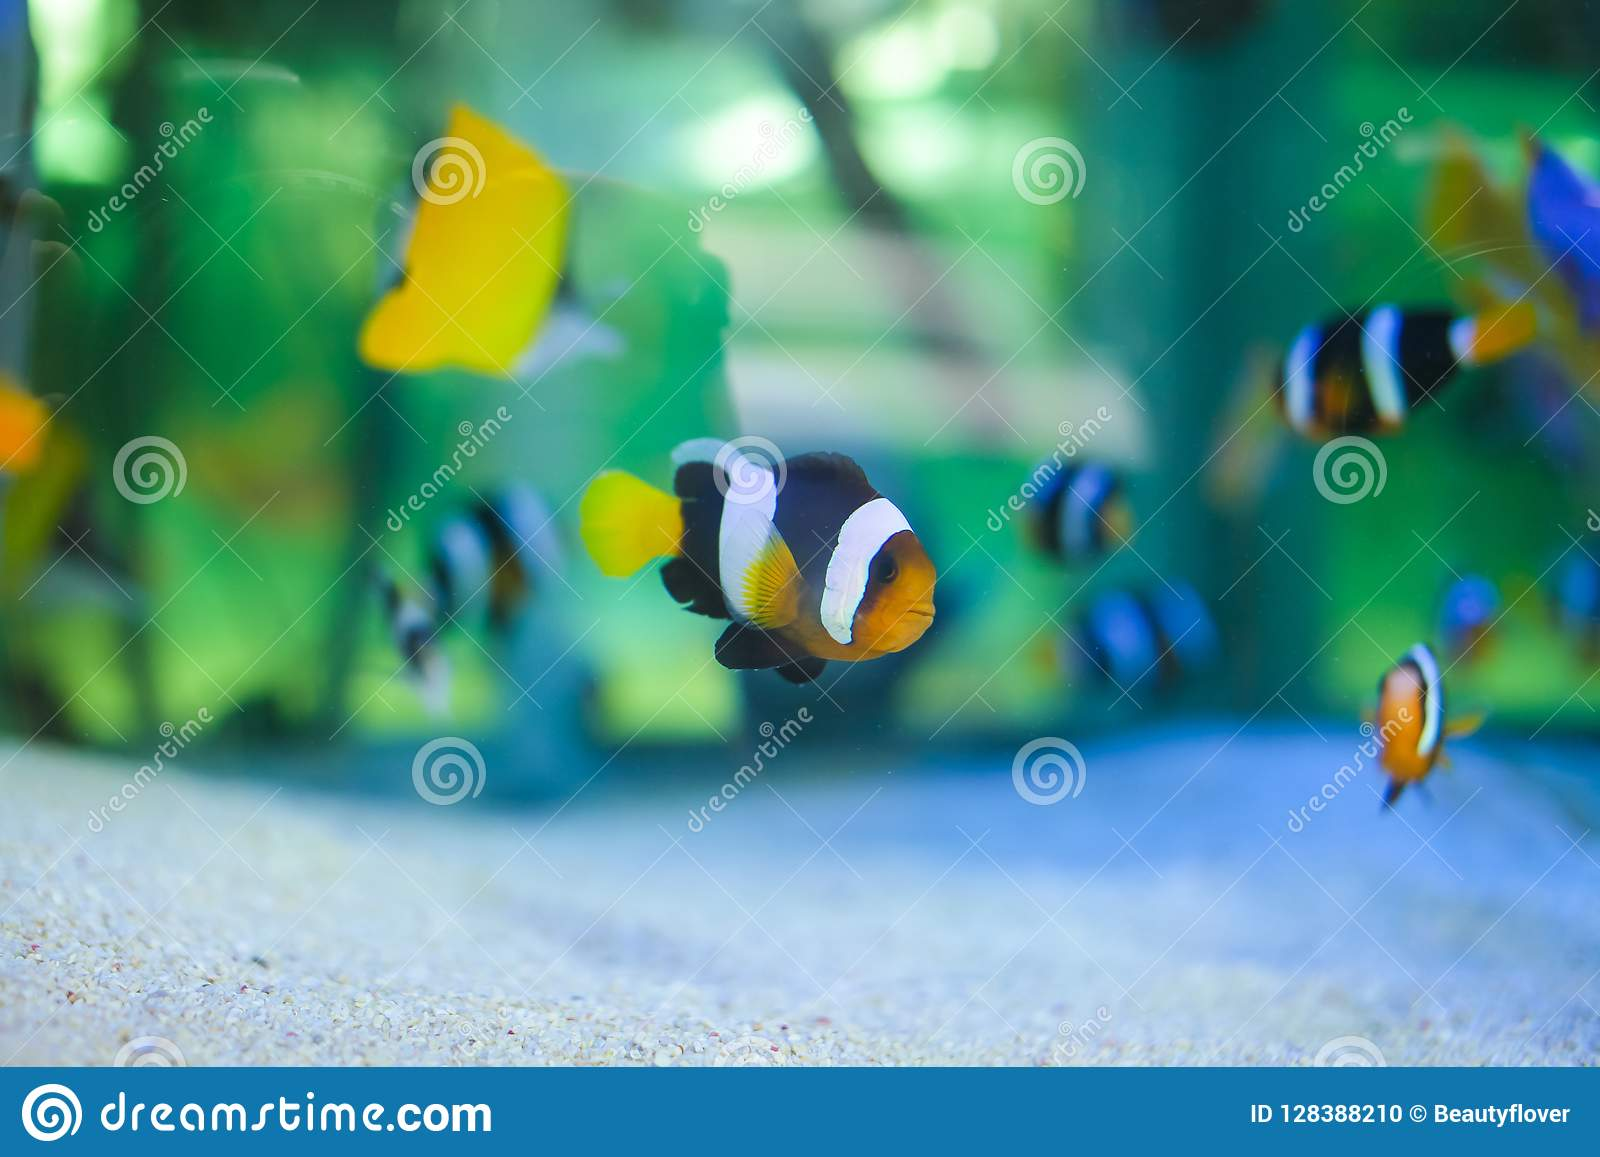 Beautiful Bright Tropical Fishes In Aquarium For Sale On Fish Market